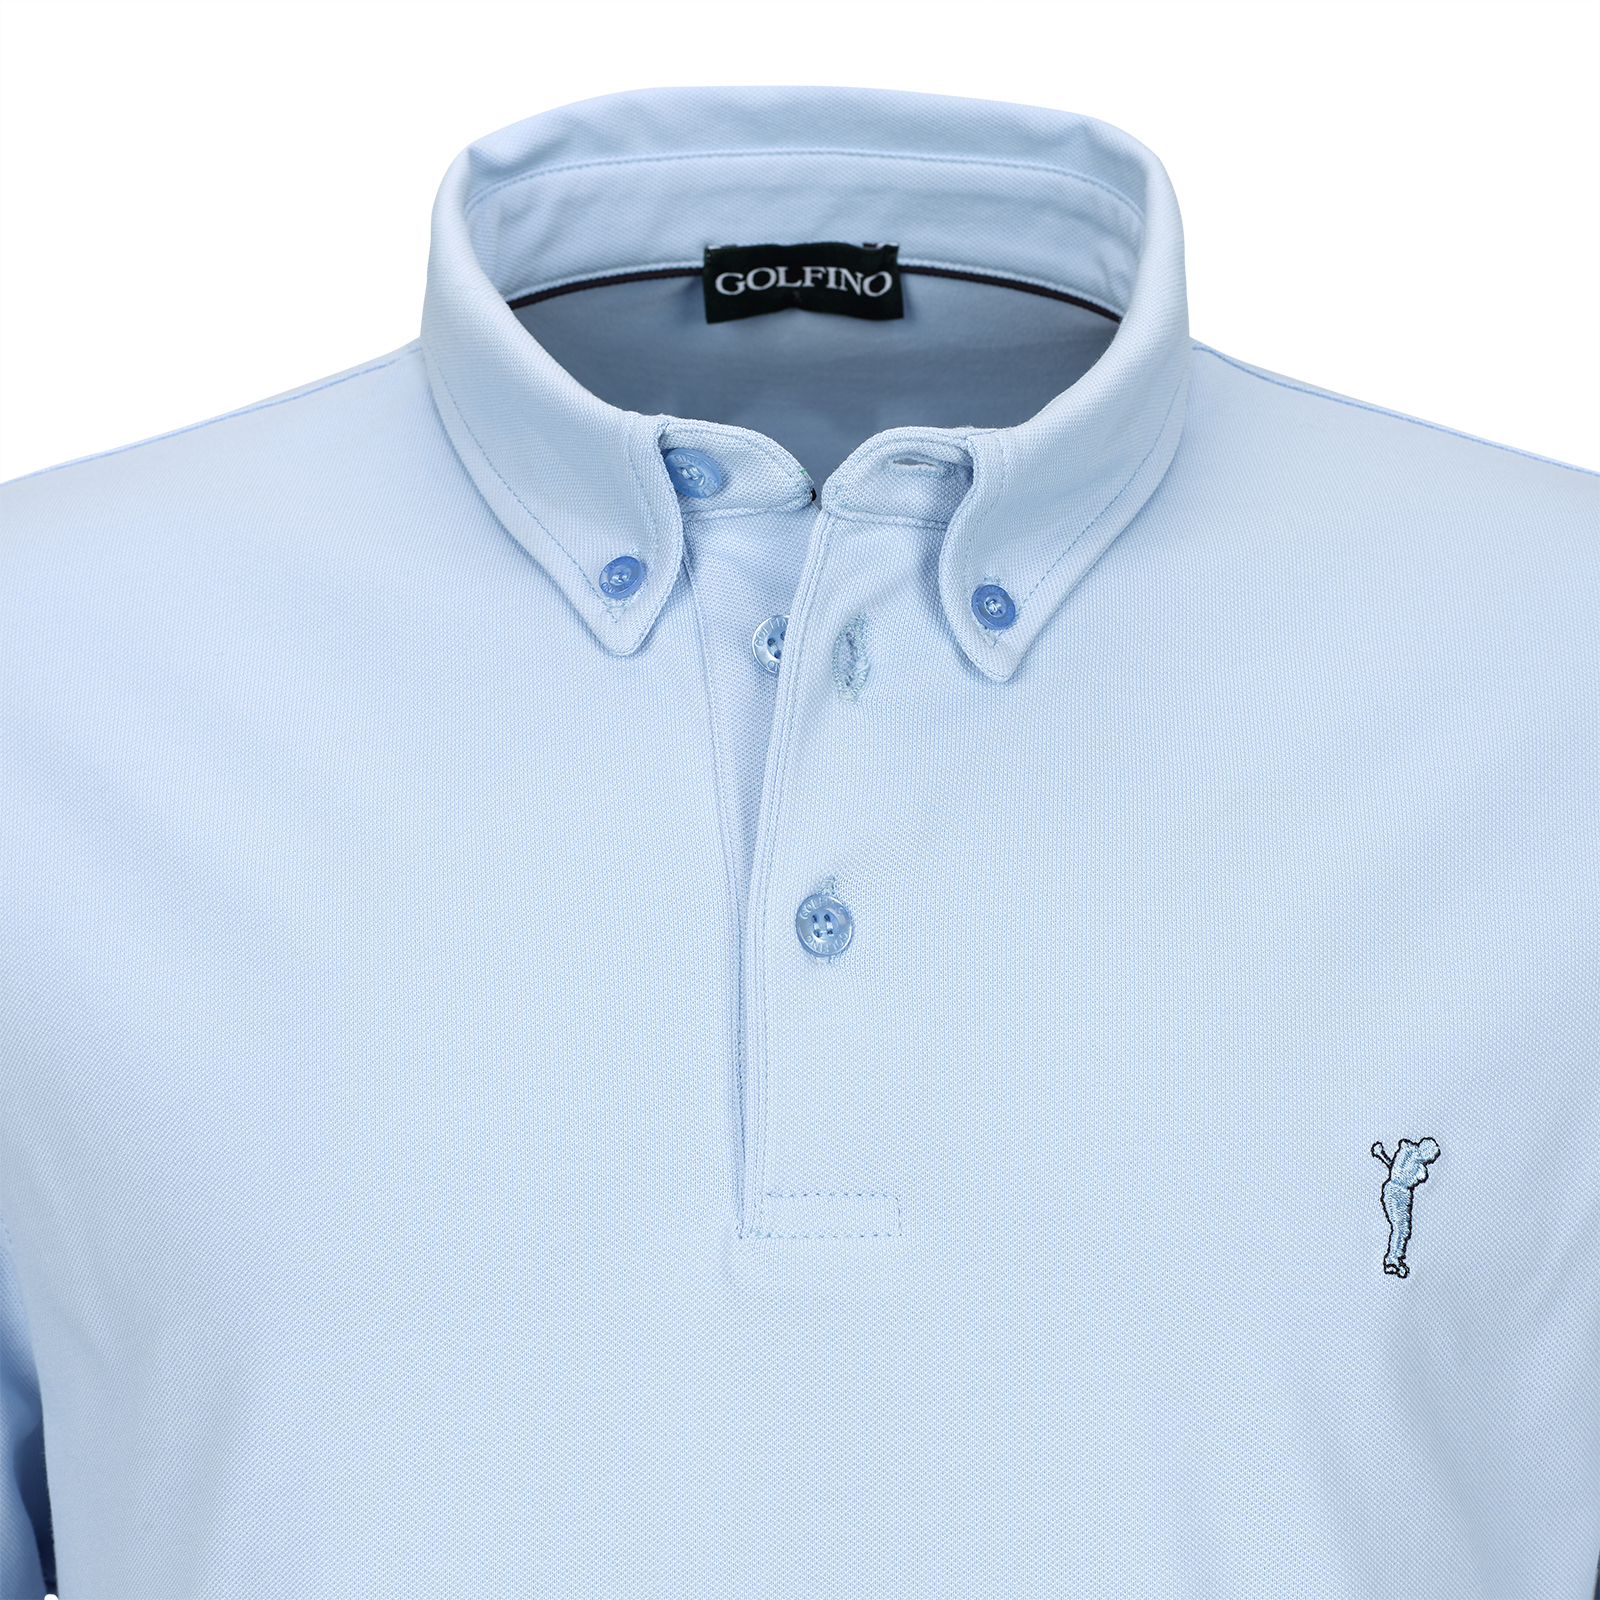 Langarm Button Down Herren Golfpolo mit Sun Protection in Regular Fit